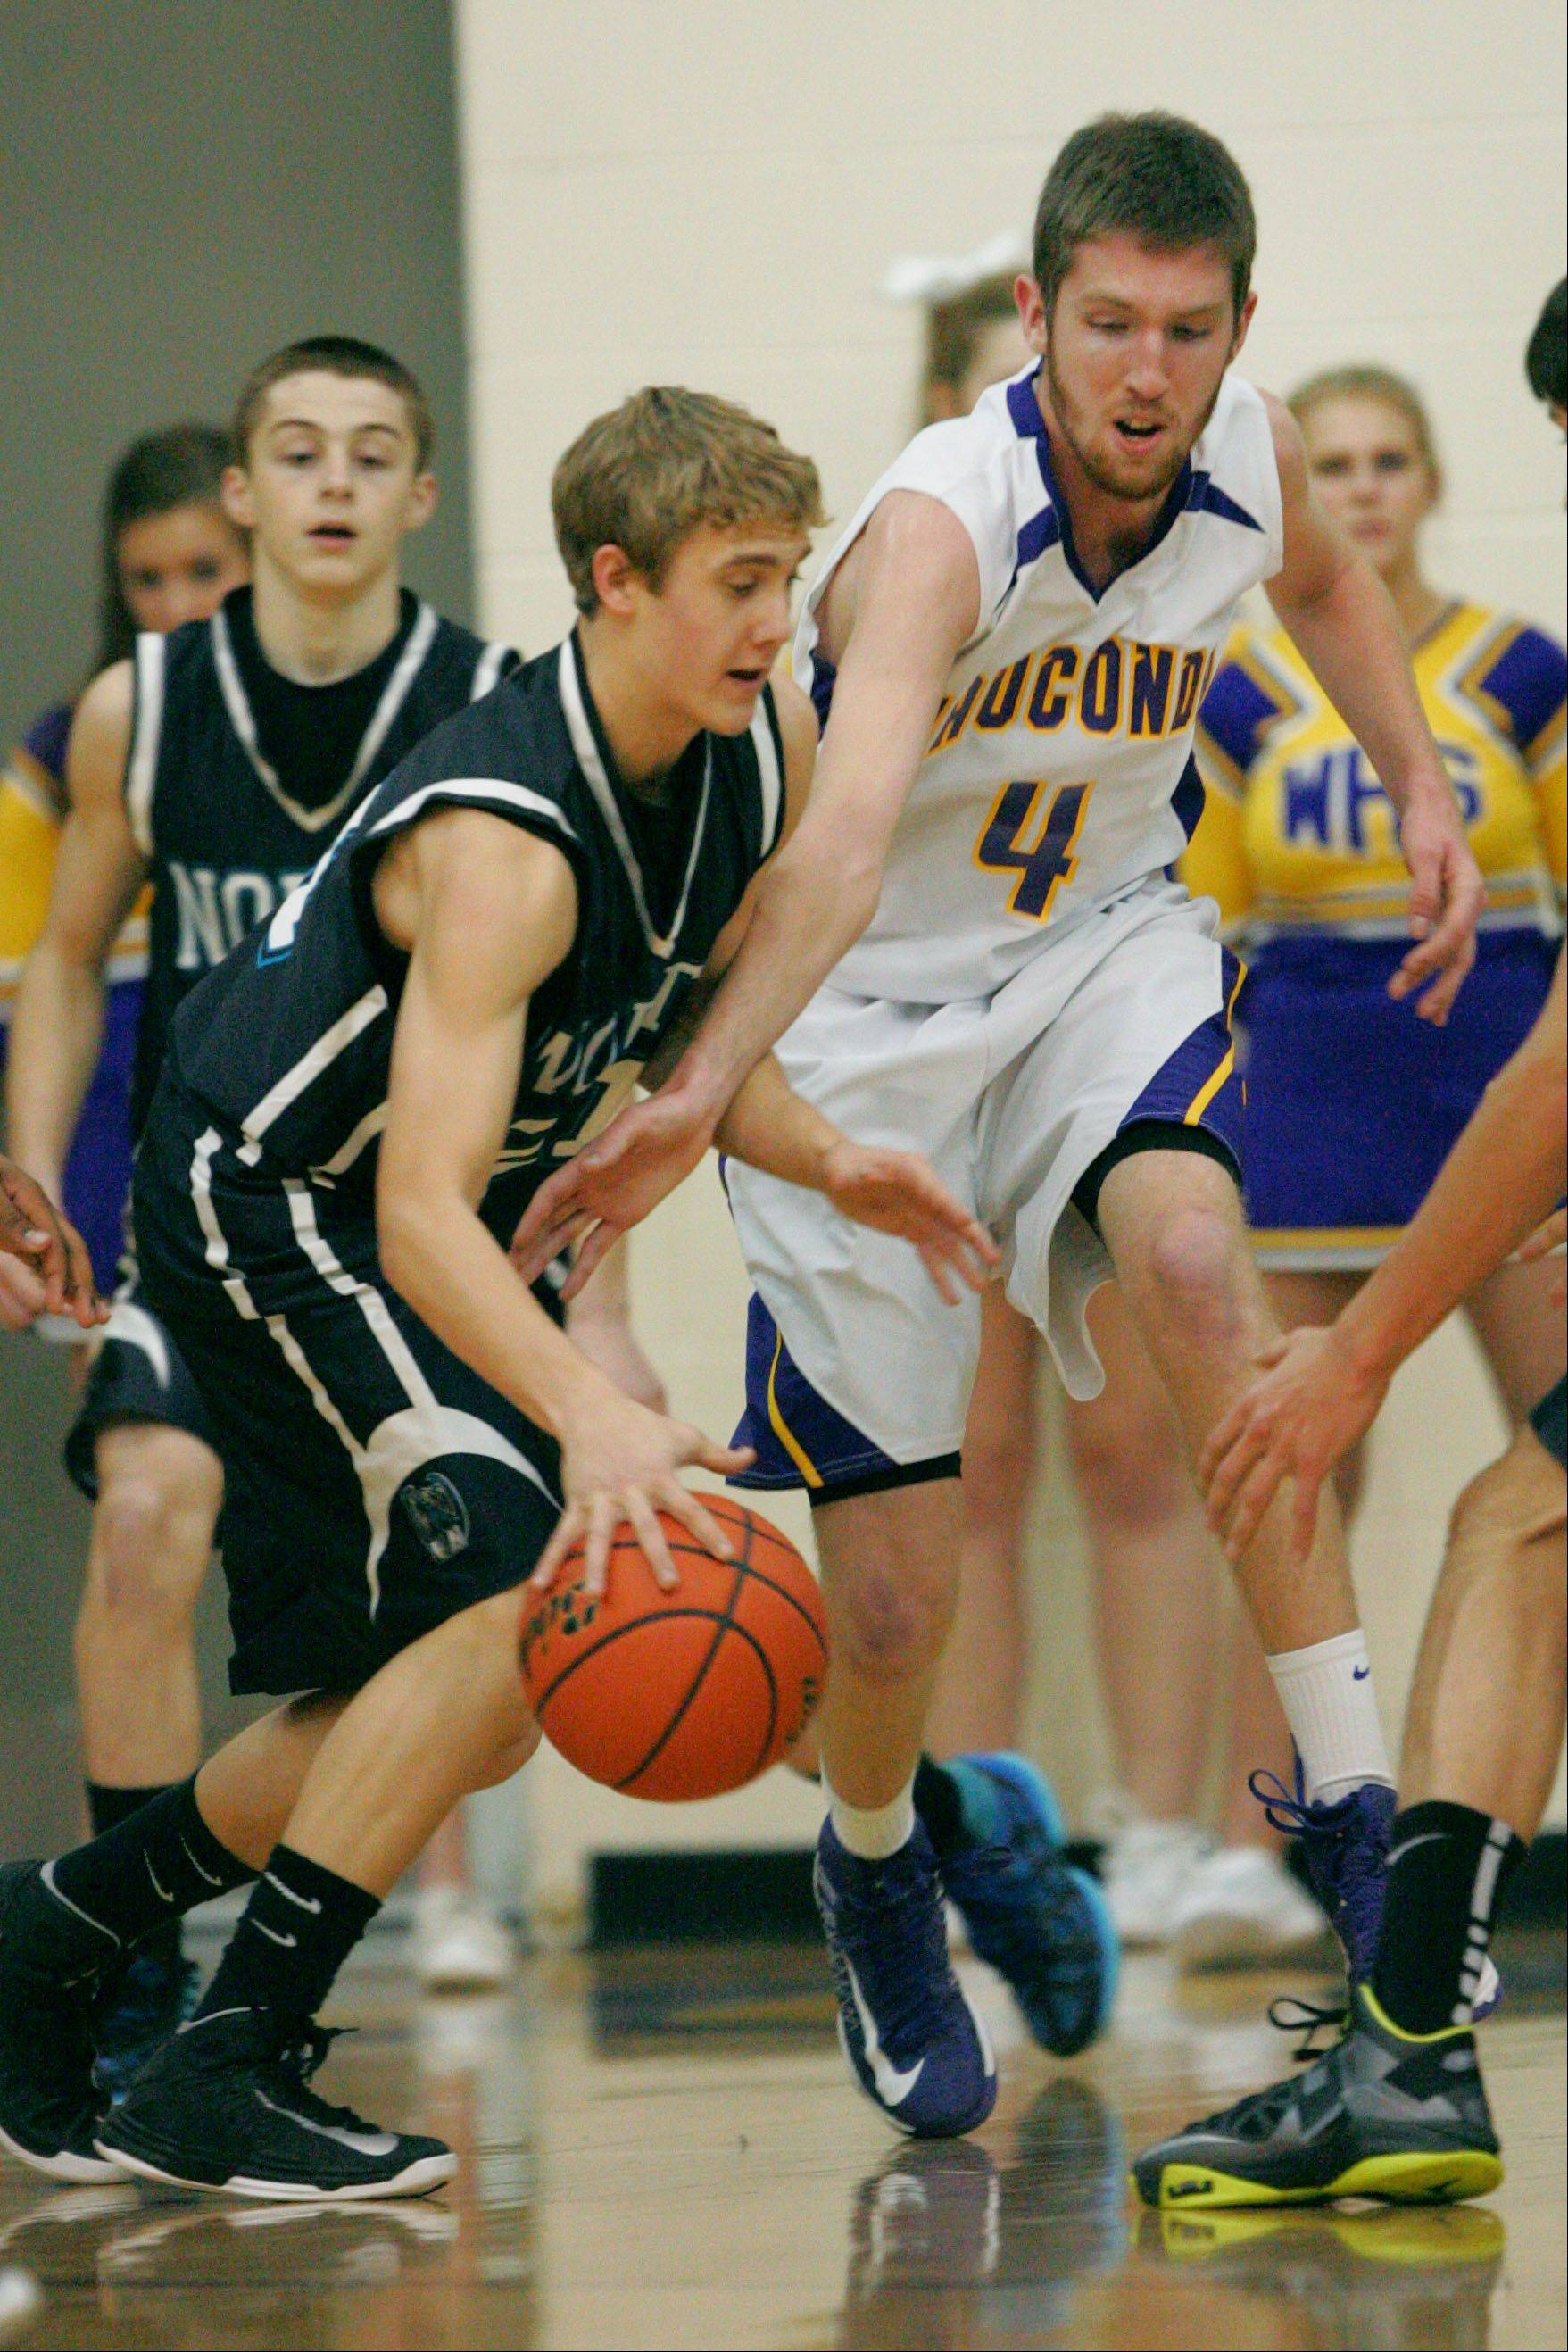 Wauconda's Ricky Sidlowski, right, tries to steal the ball from Woodstock North's Shane Zieman.